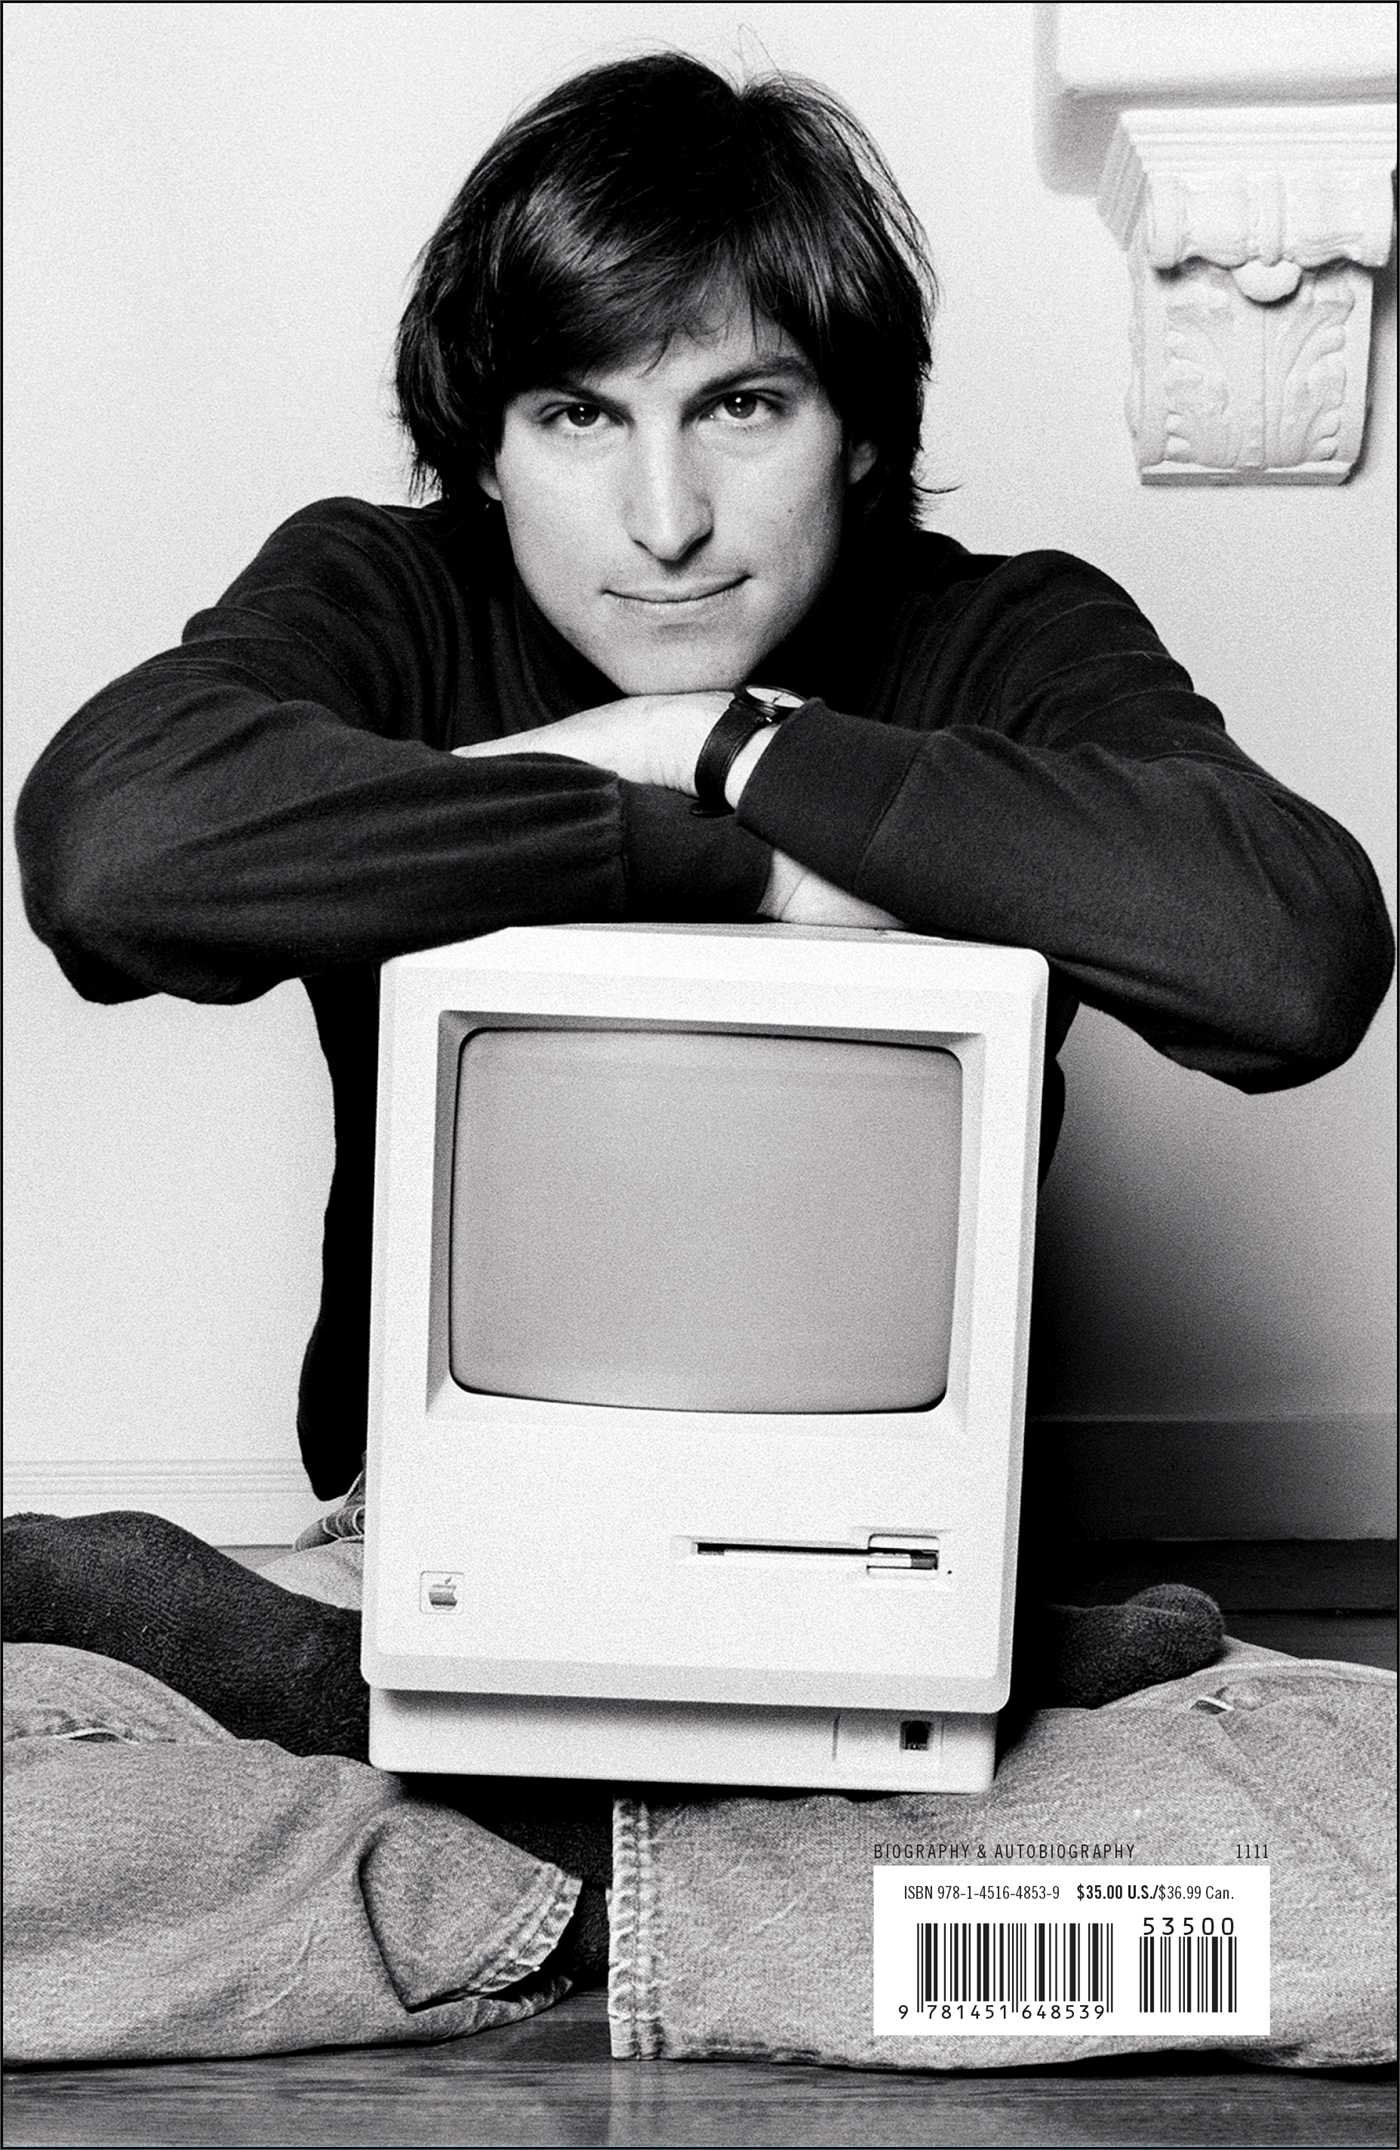 Of book pdf the isteve jobs